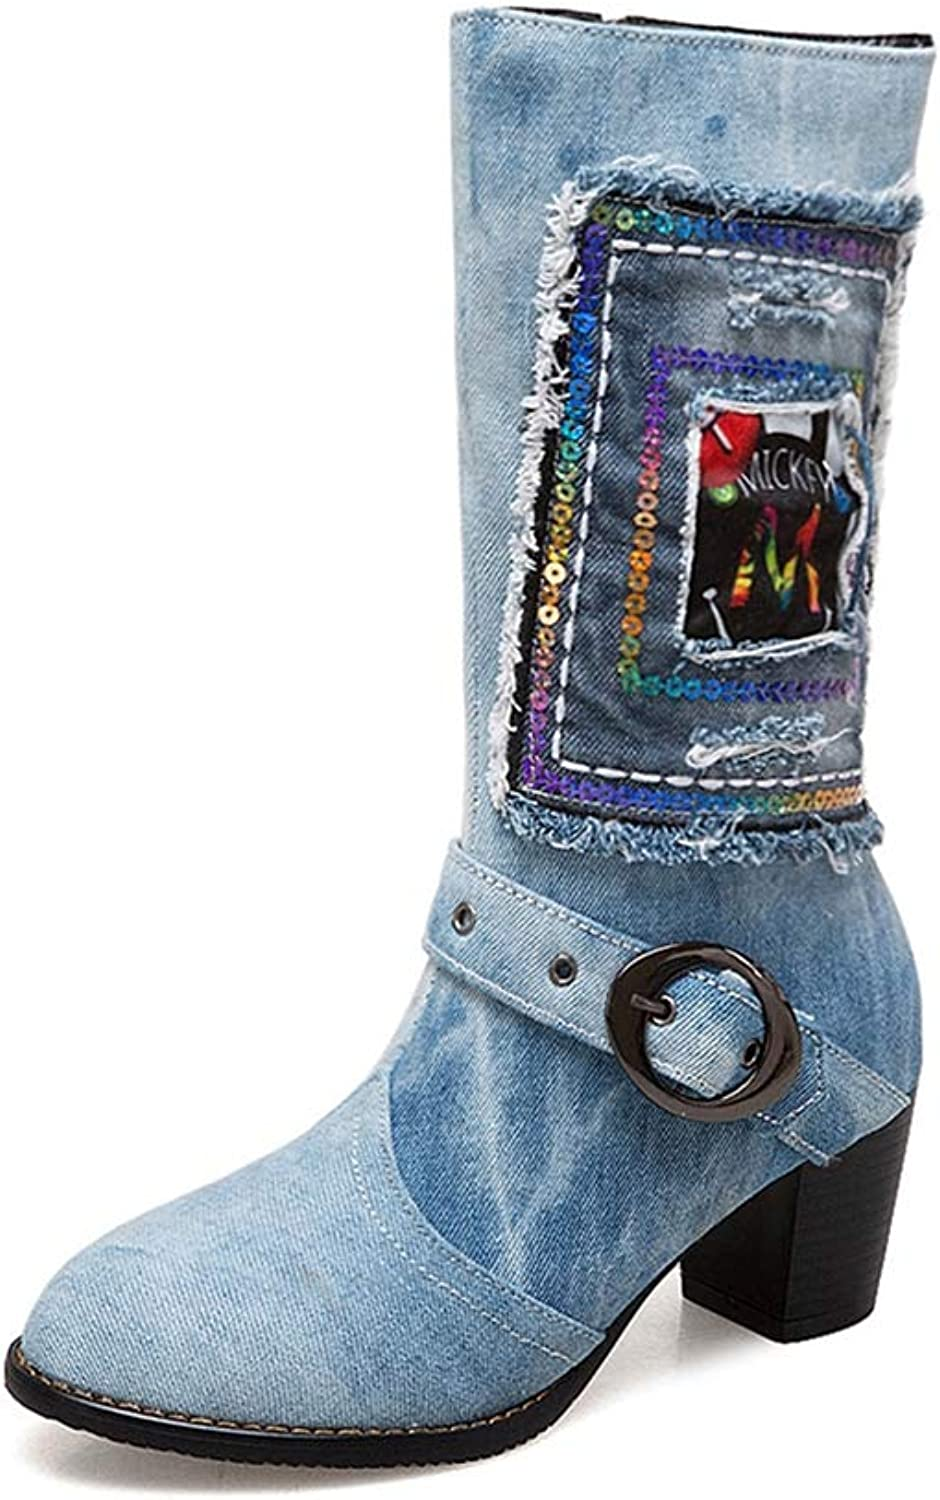 T-JULY Women's Fashion Square High Heels shoes Female Plus Size Zip Up Boots Denim Mid Calf Party shoes